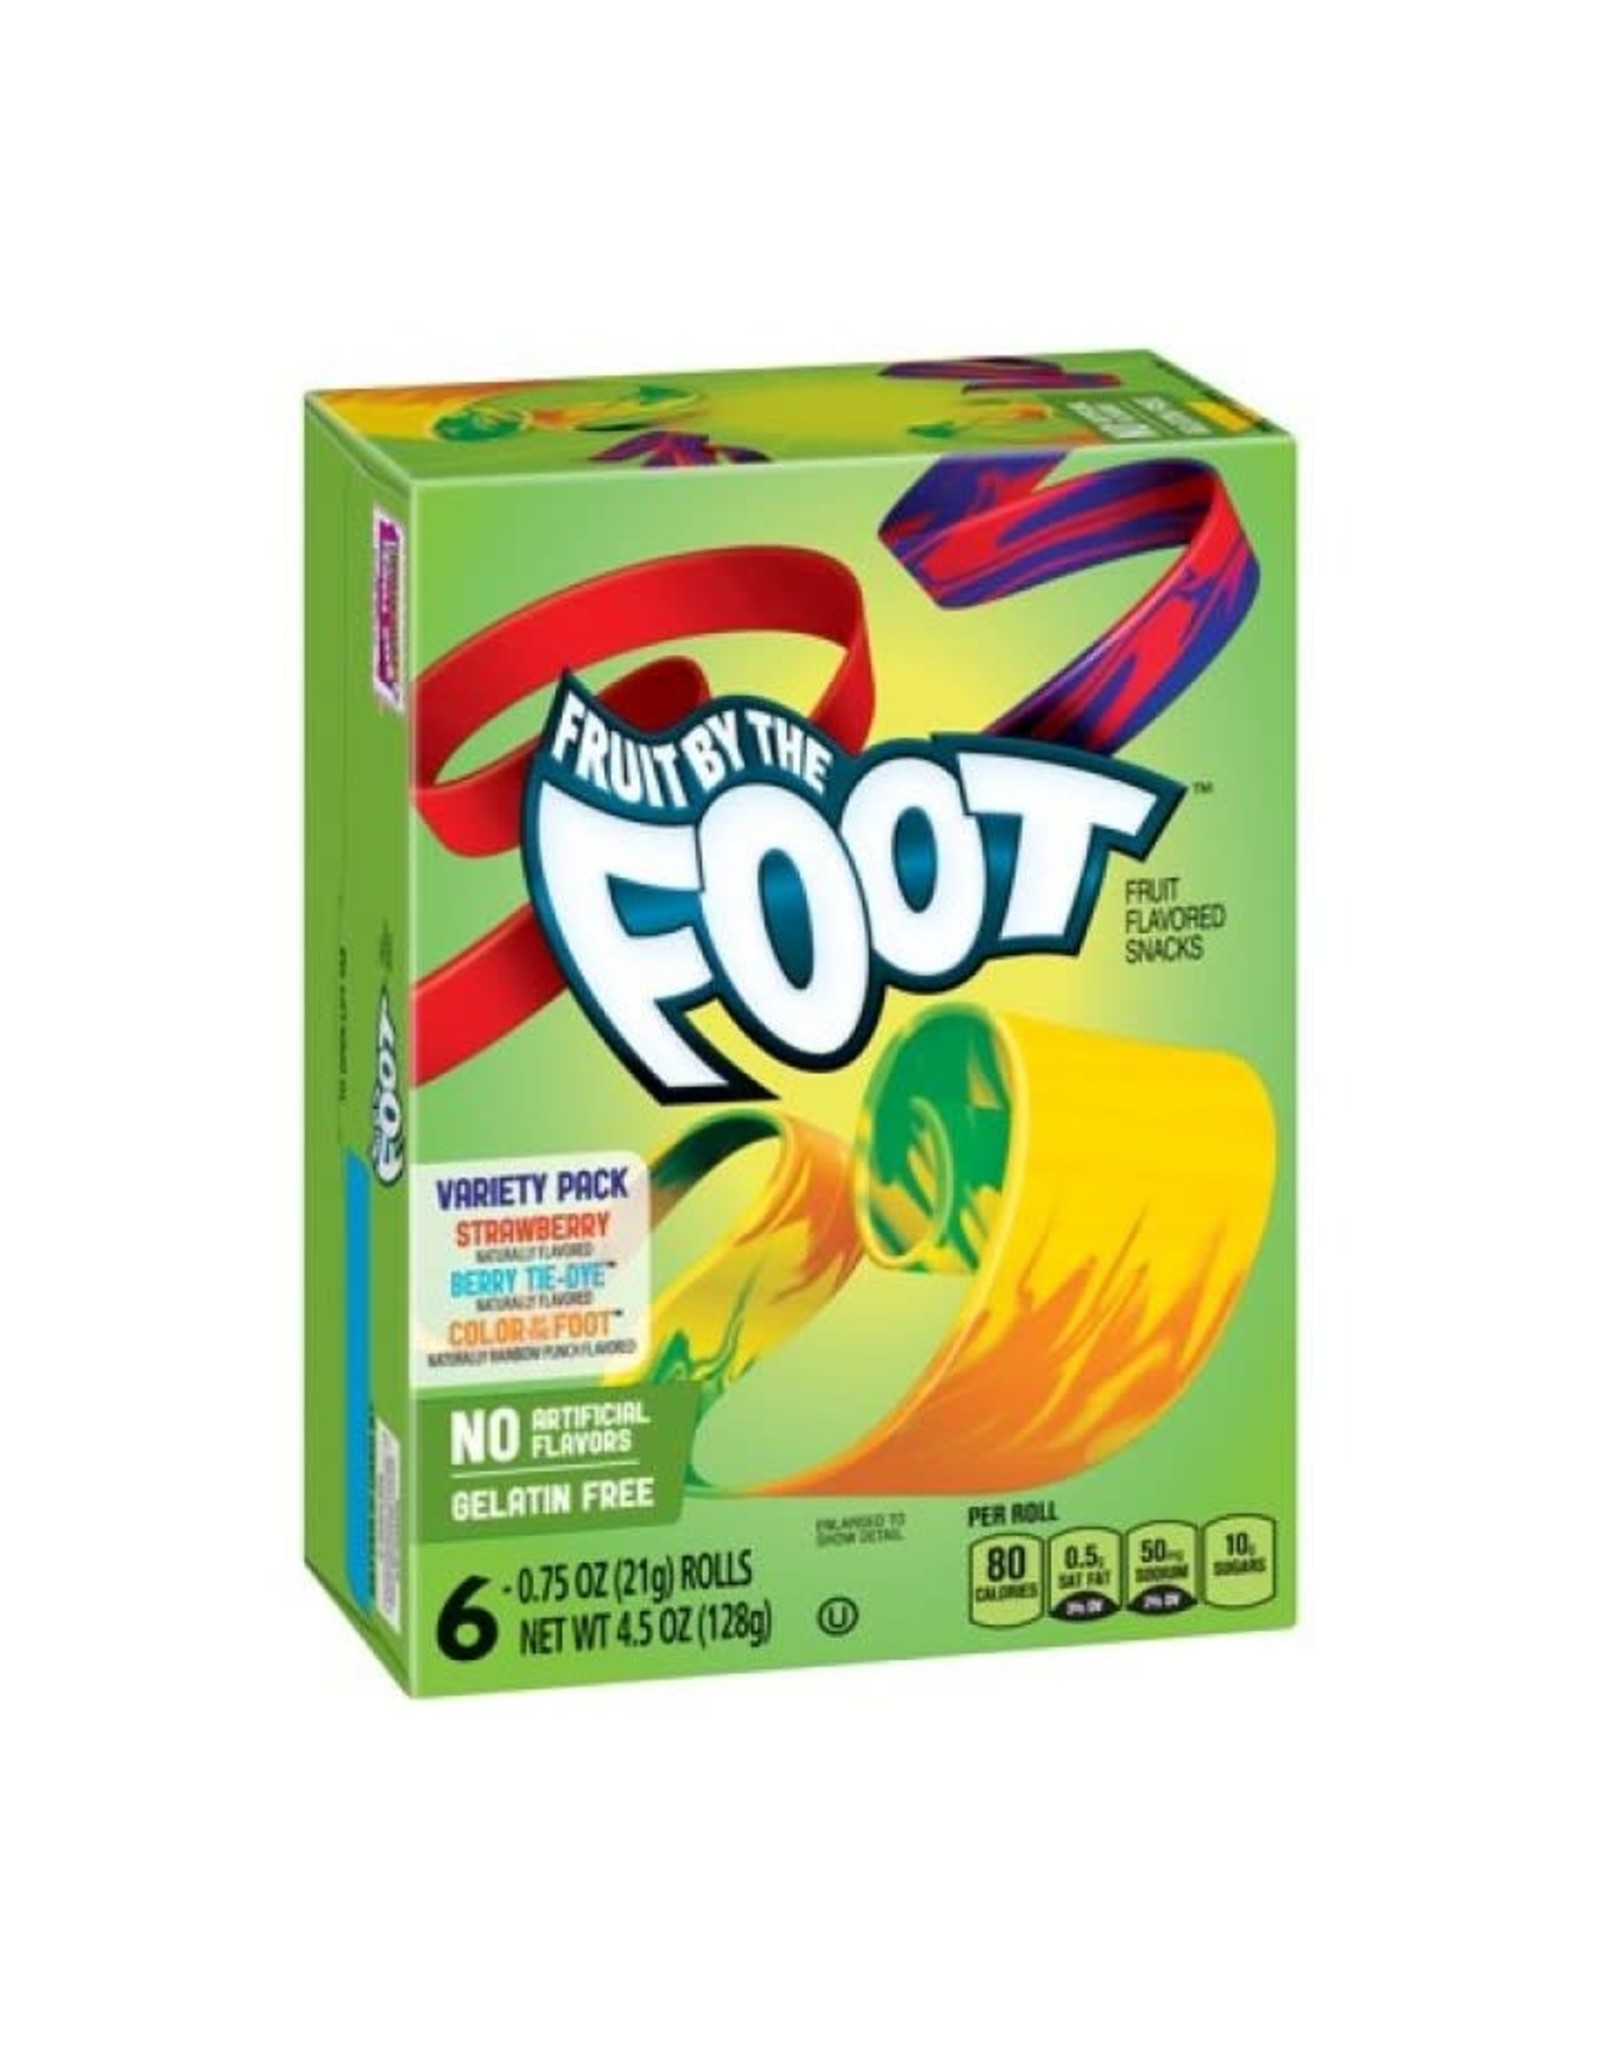 Betty Crocker - Fruit by the Foot - Variety